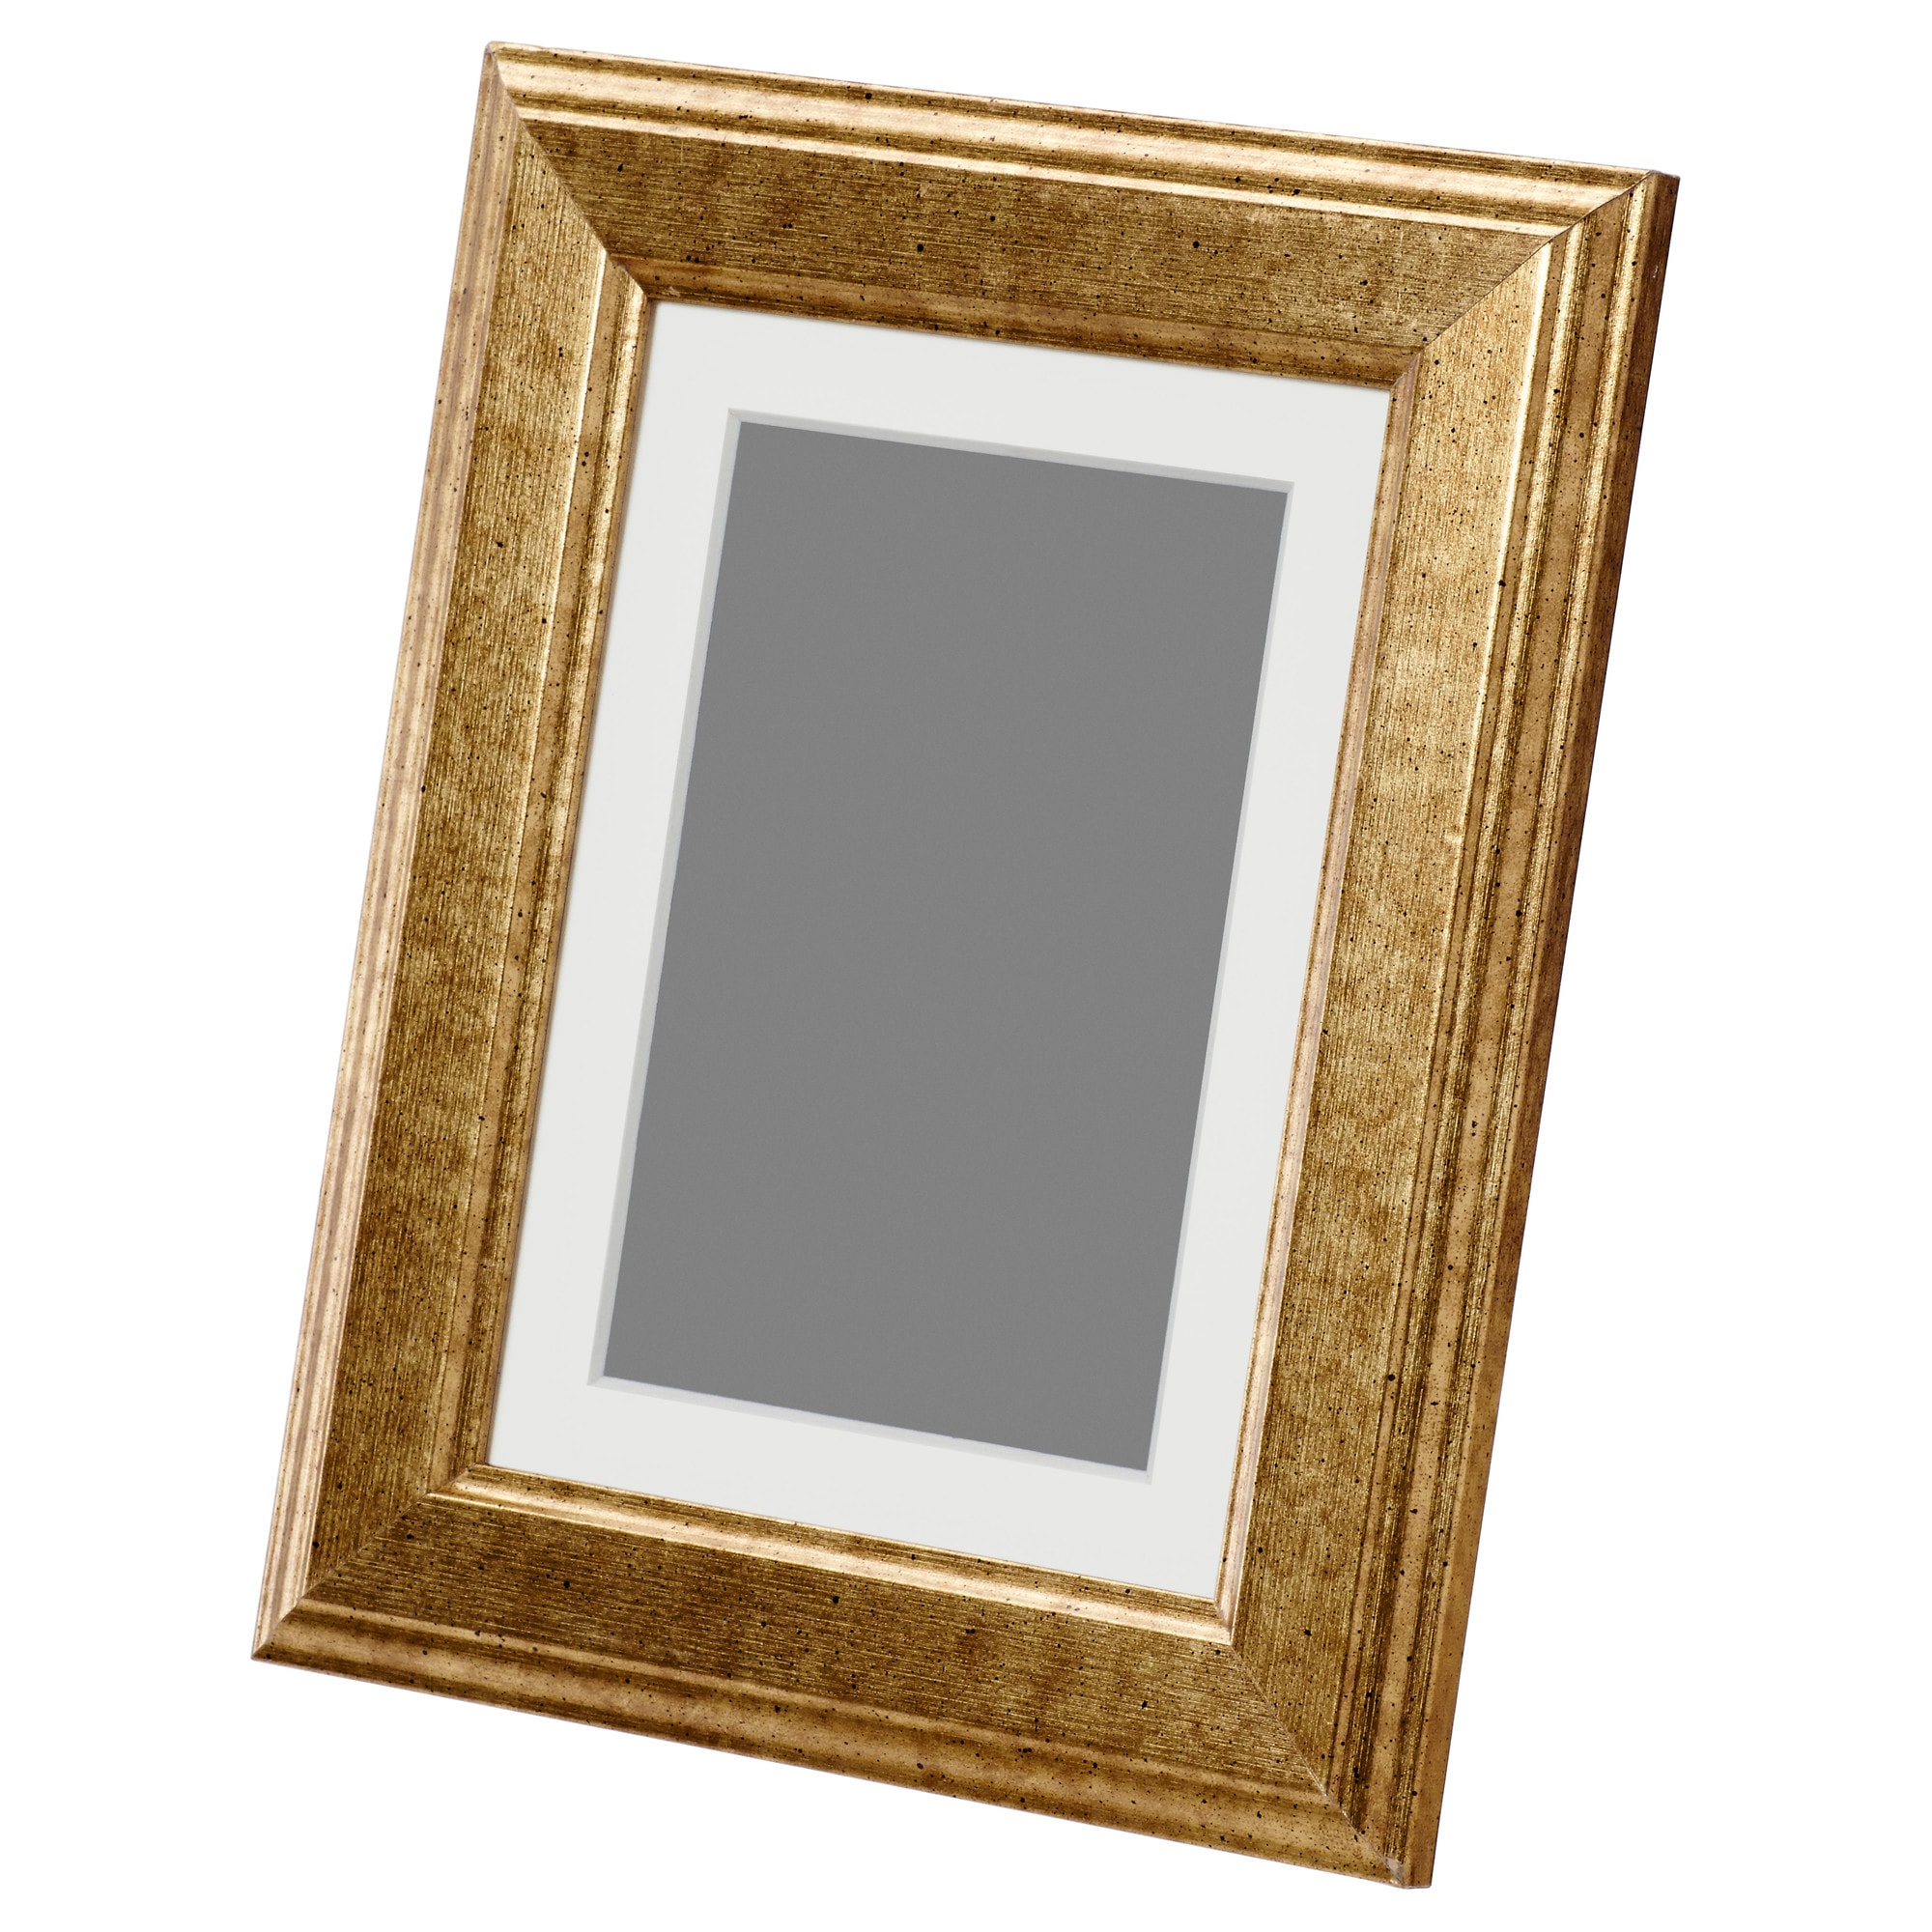 virserum frame gold picture without mat width 5 picture without mat